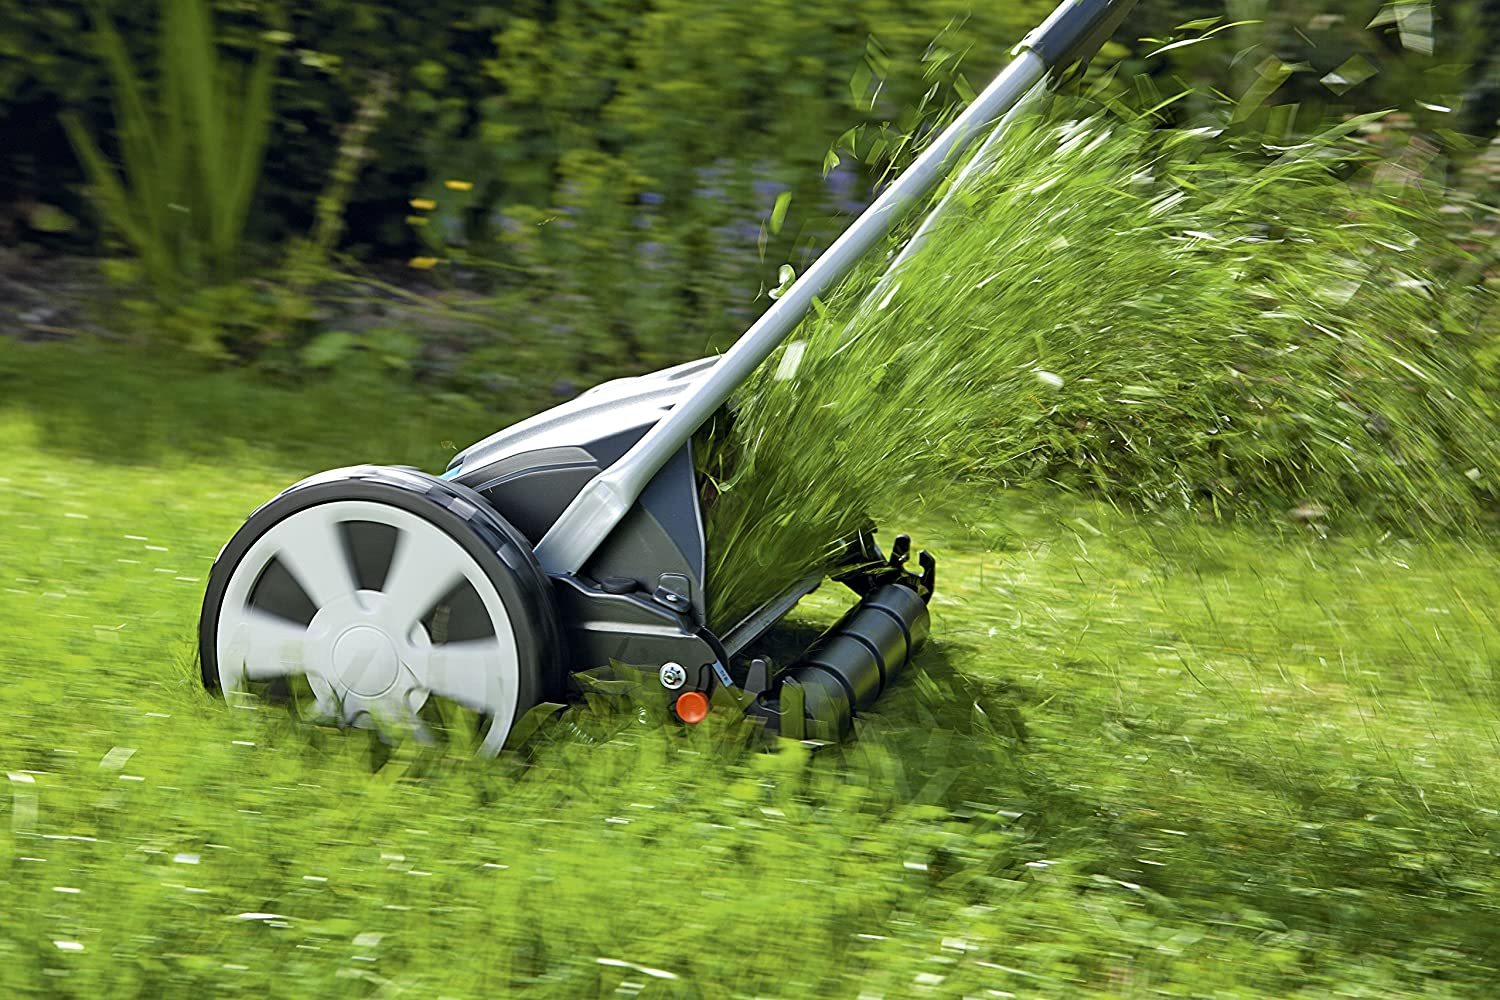 Best Cylinder Lawn Mowers UK